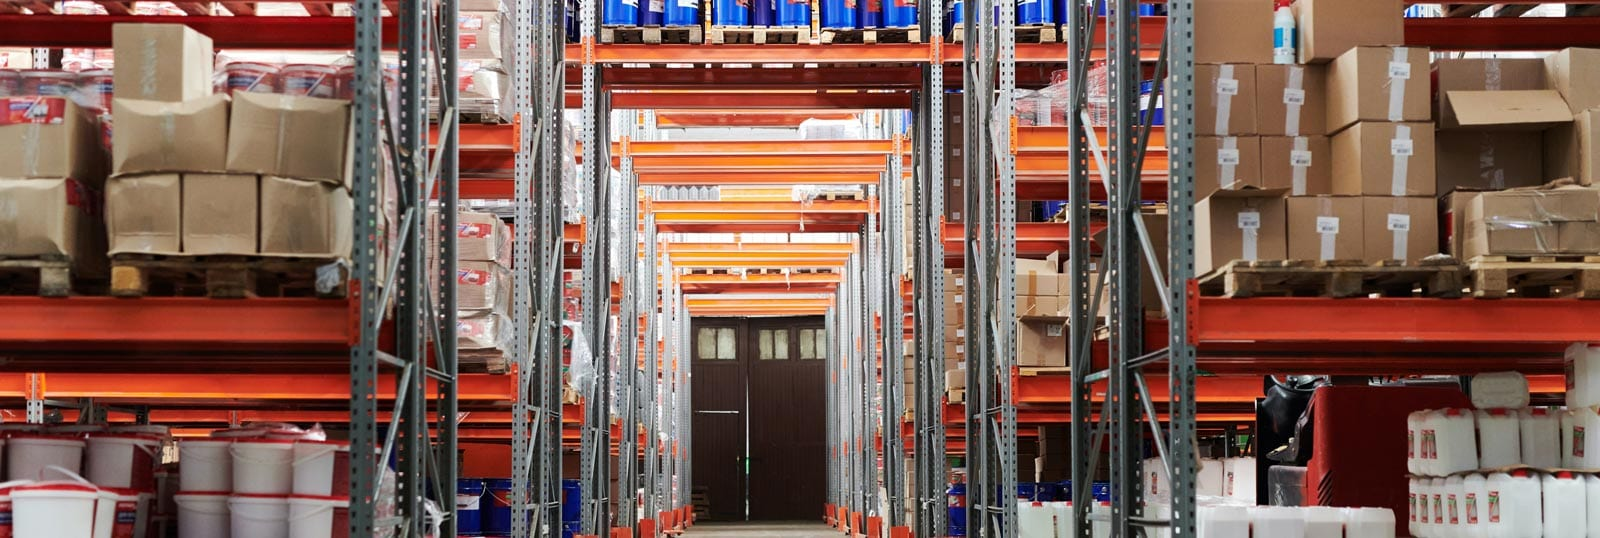 Internal image of a warehouse with racking